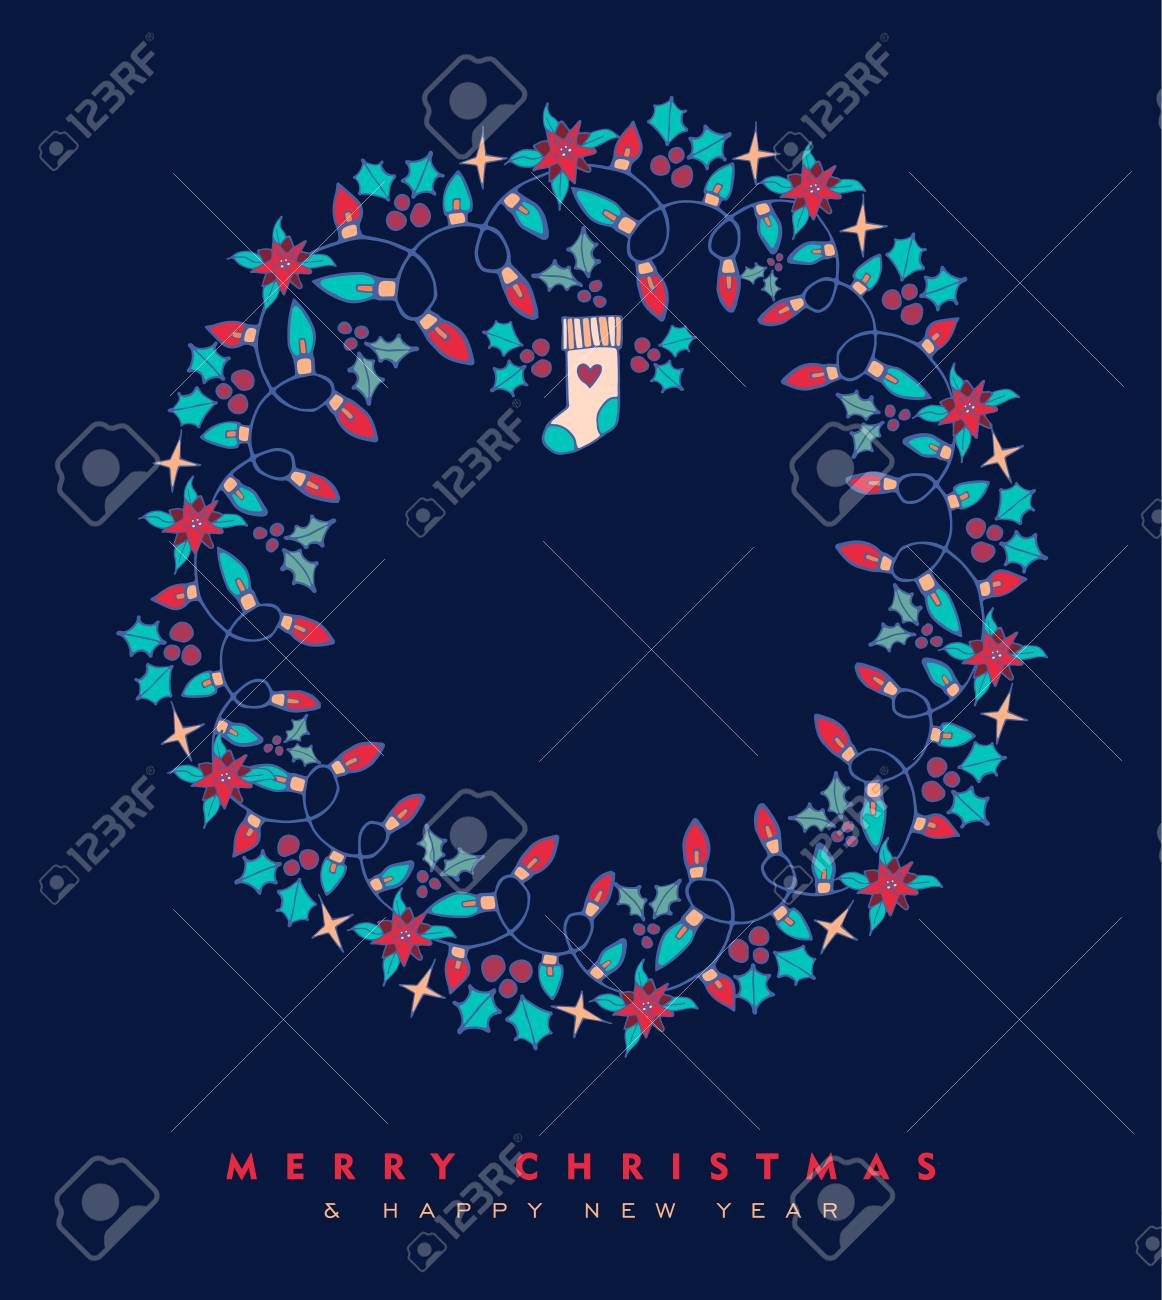 merry christmas and happy new year hand drawn greeting card design with wreath shape holiday nature